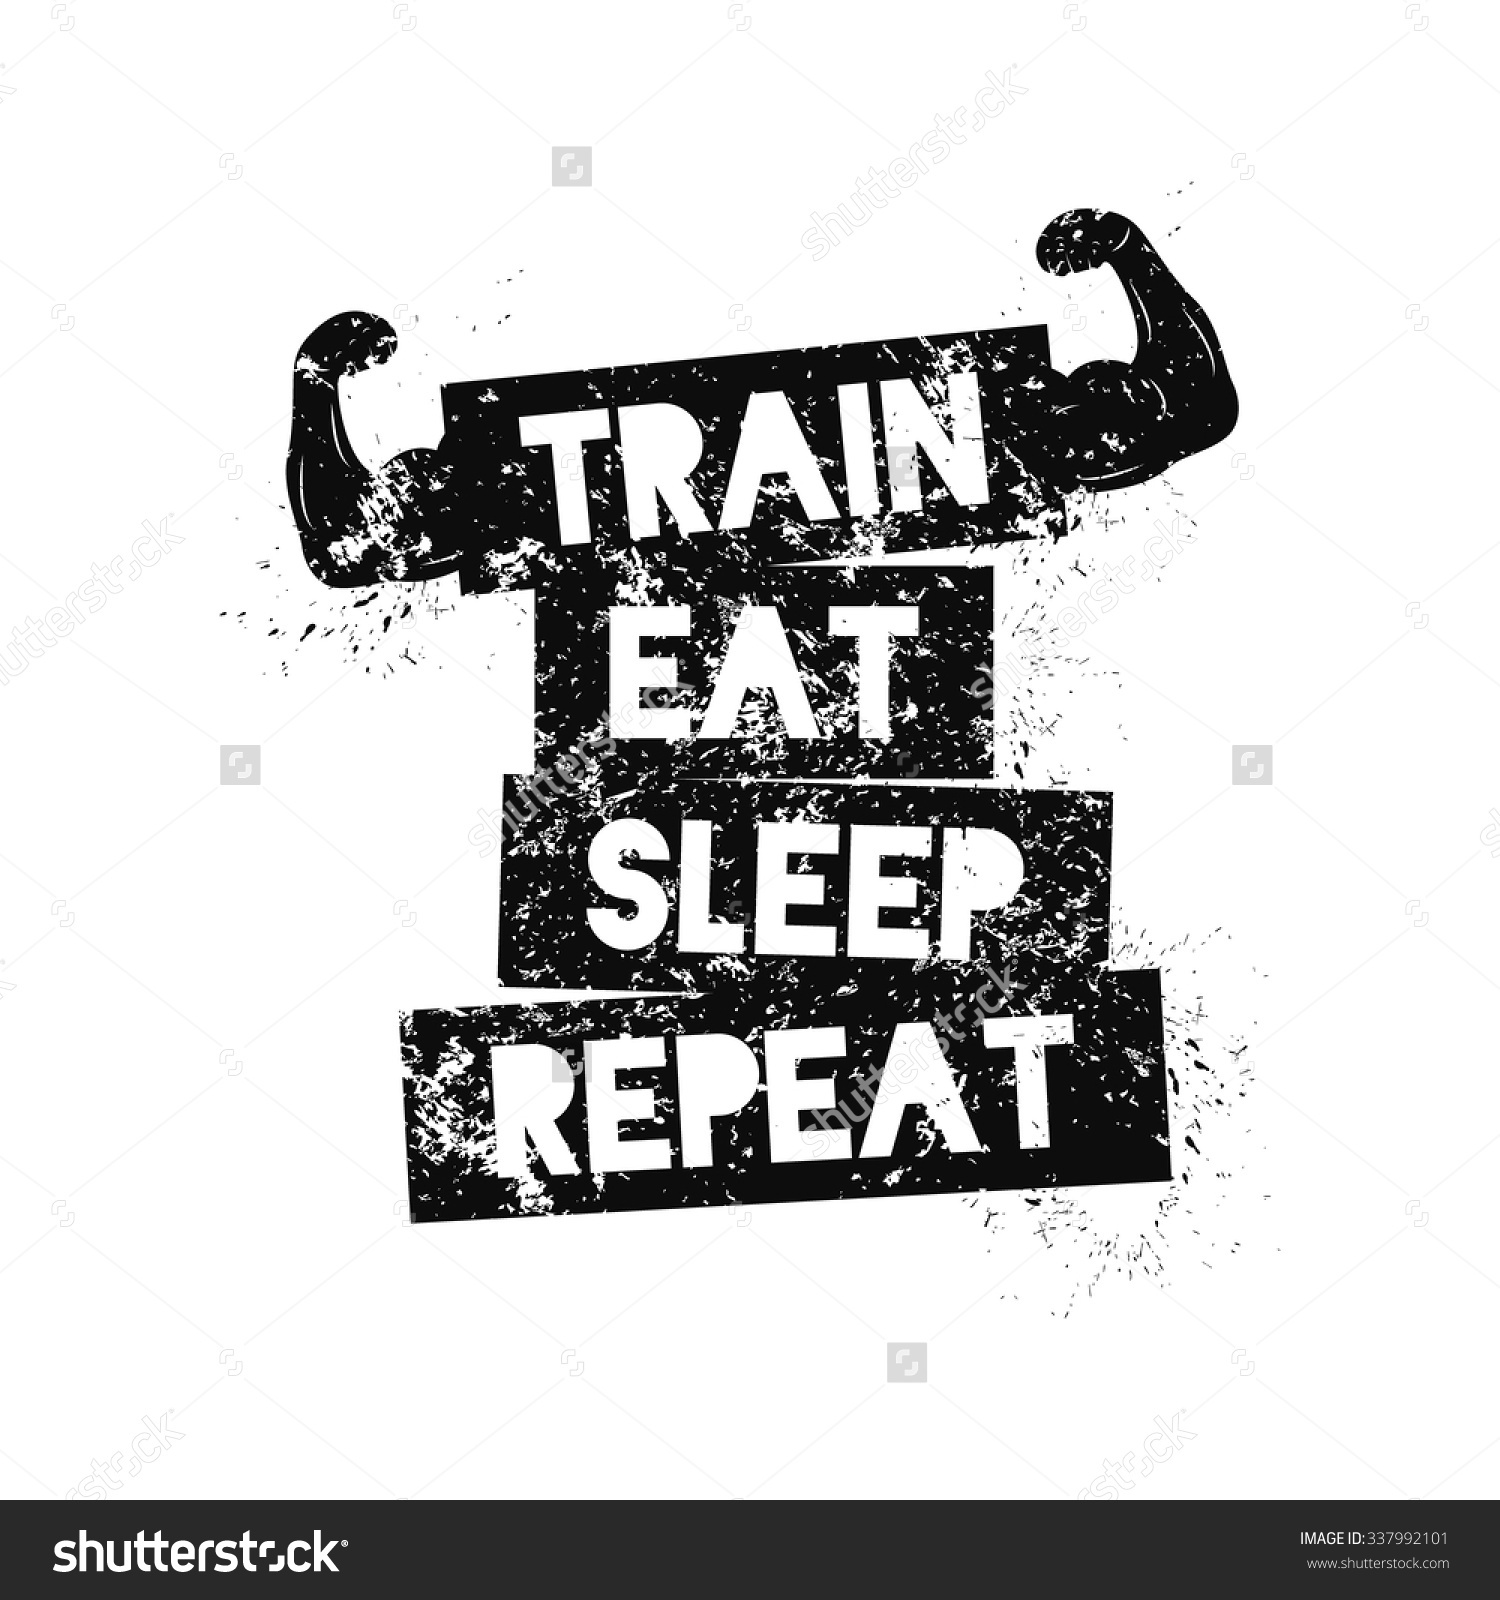 Train Eat Sleep Repeat Motivational Quote Stock Vector 337992101.